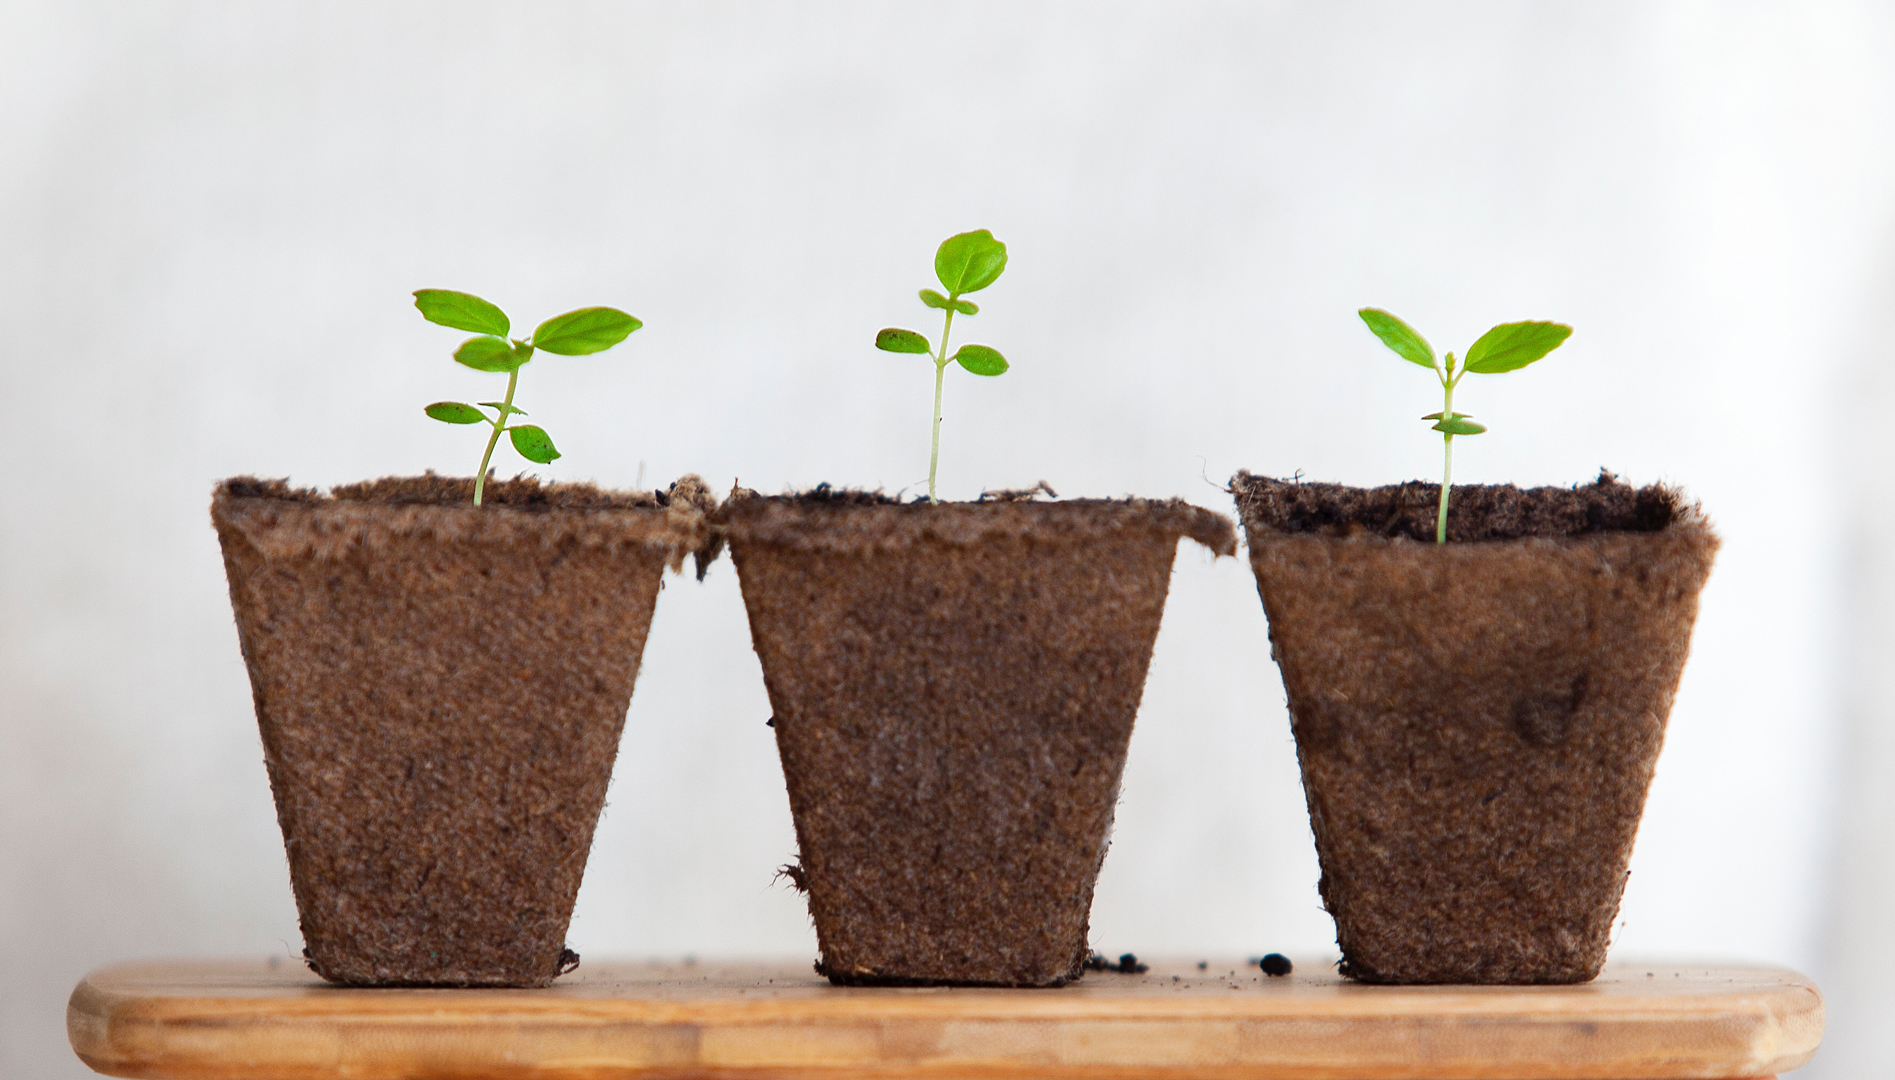 Image of three seedlings on wooden board. Photo source: Daniel Hjalmarsson, Unsplash